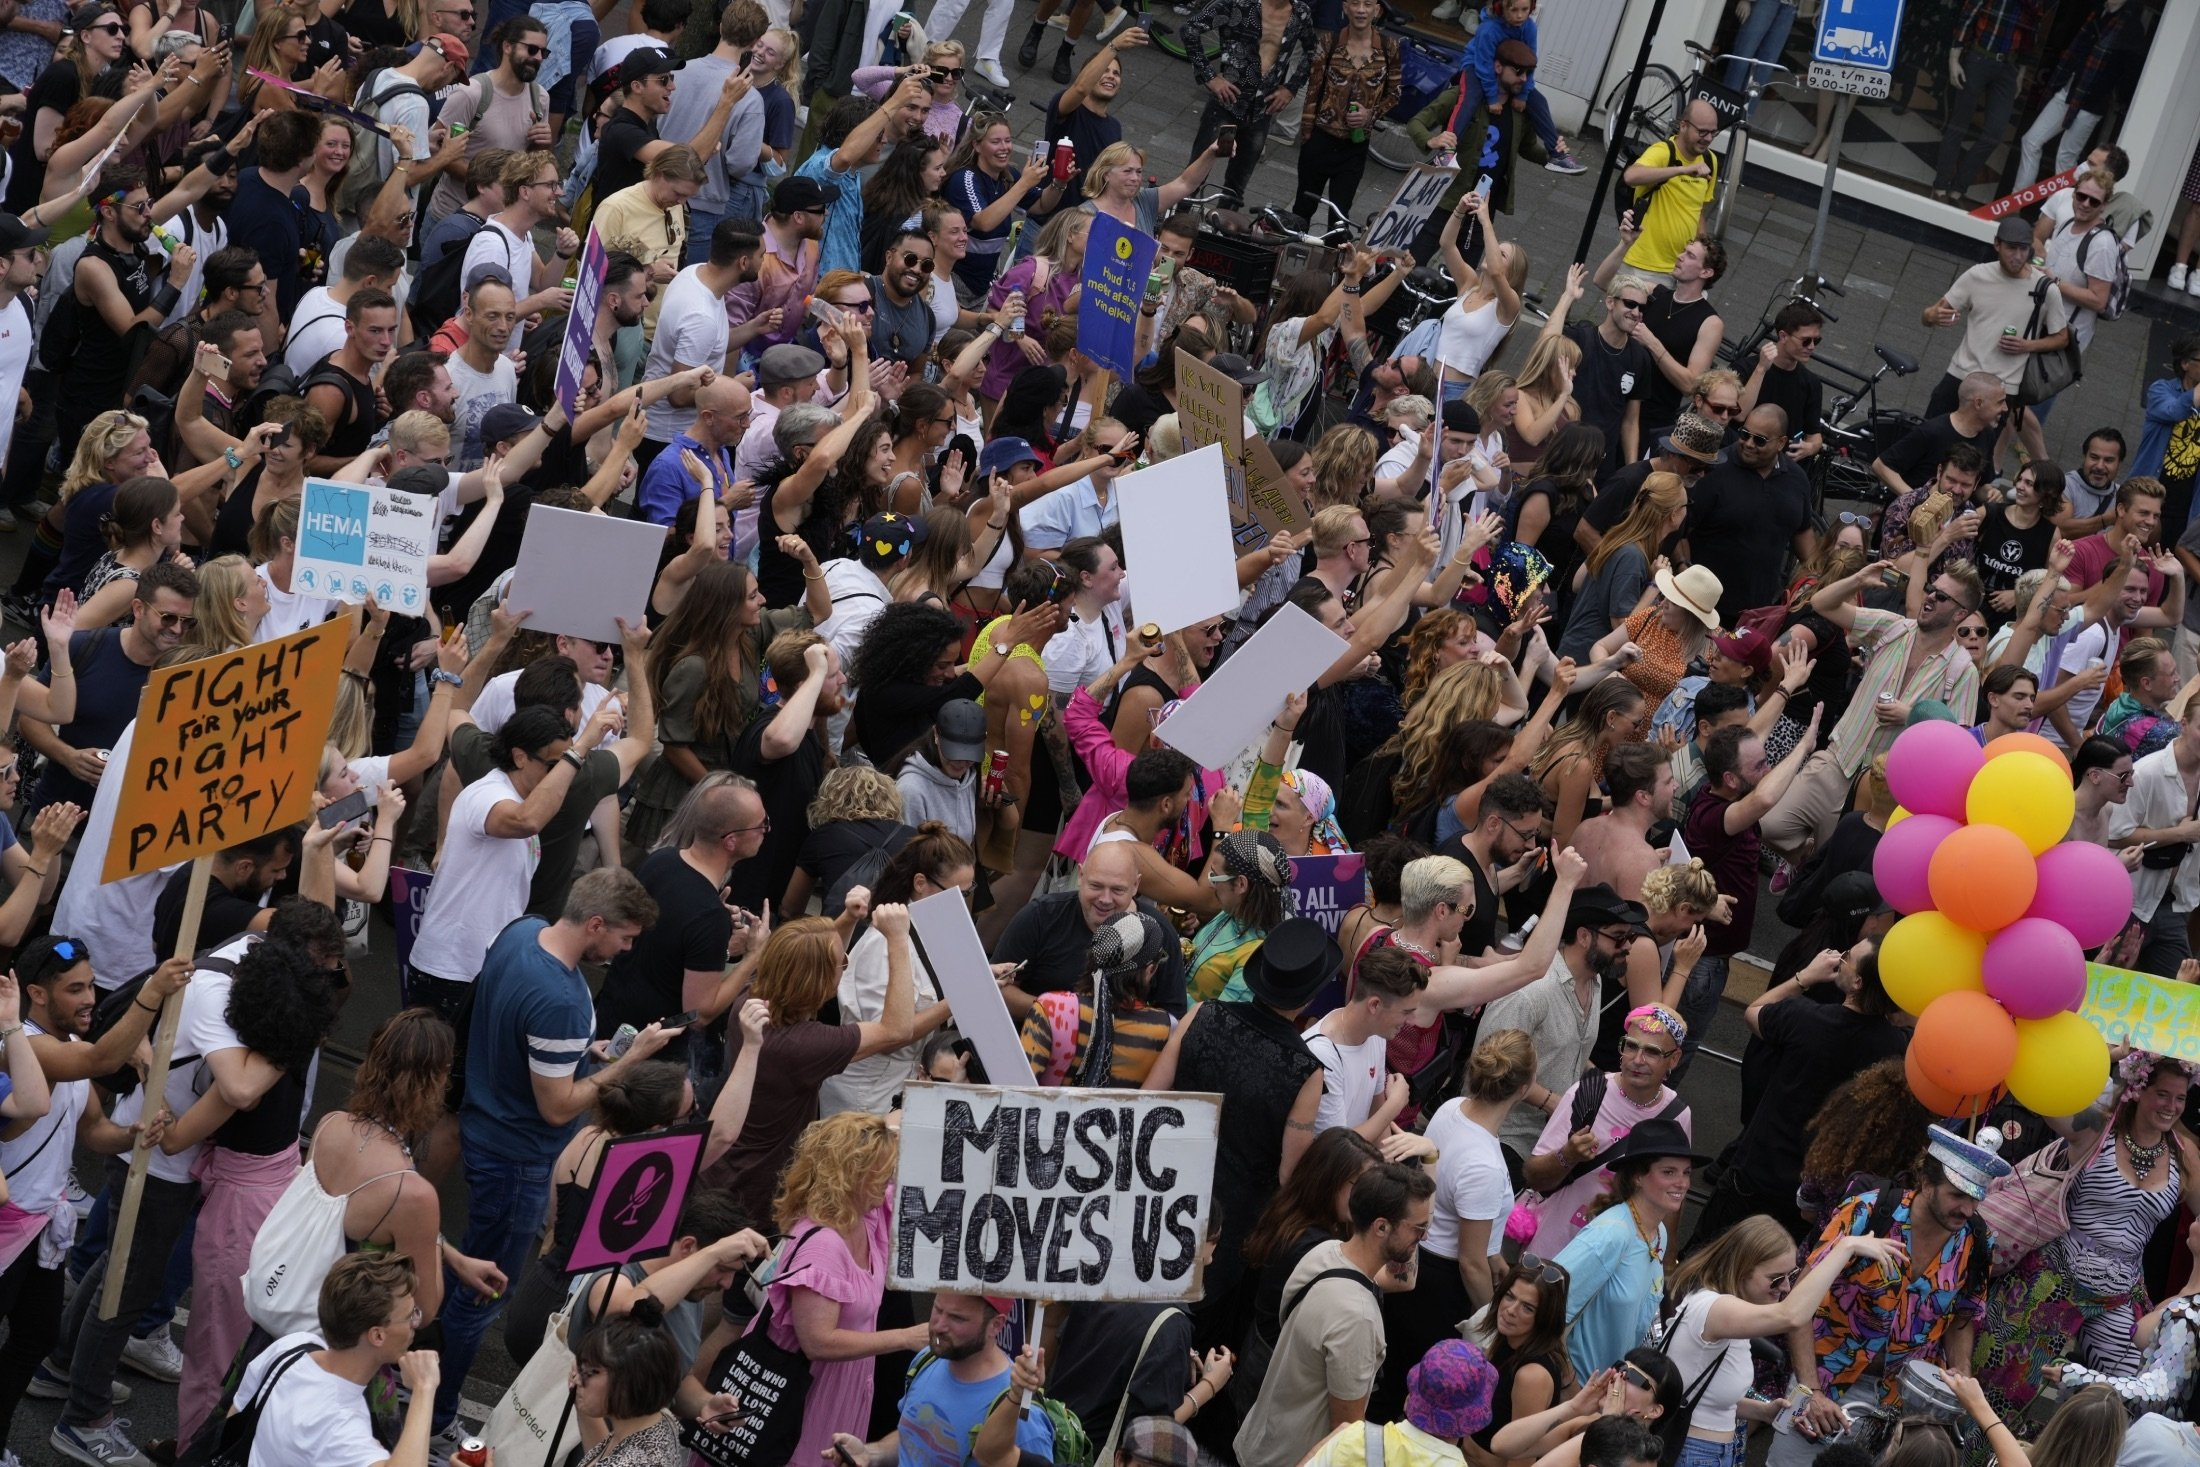 Thousands of fans of music festivals stage protestsagainst the government's COVID-19 restrictions on large-scale outdoor events, in Amsterdam, Netherlands, Aug. 21, 2021. (AP Photo)